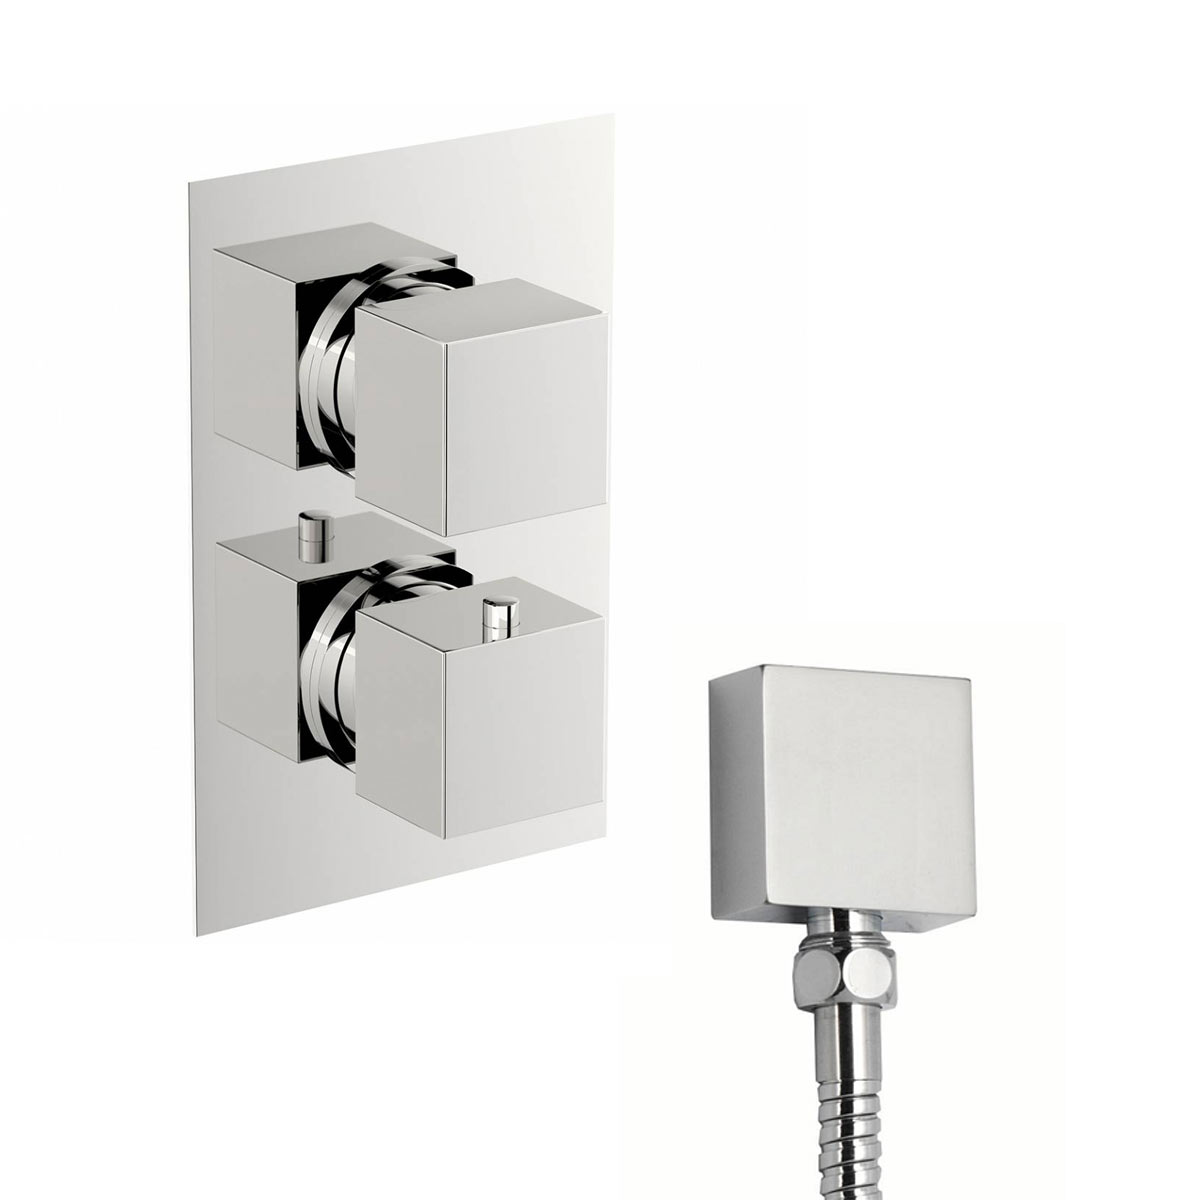 Image of Cubik Square Twin Valve with Diverter Special Offer